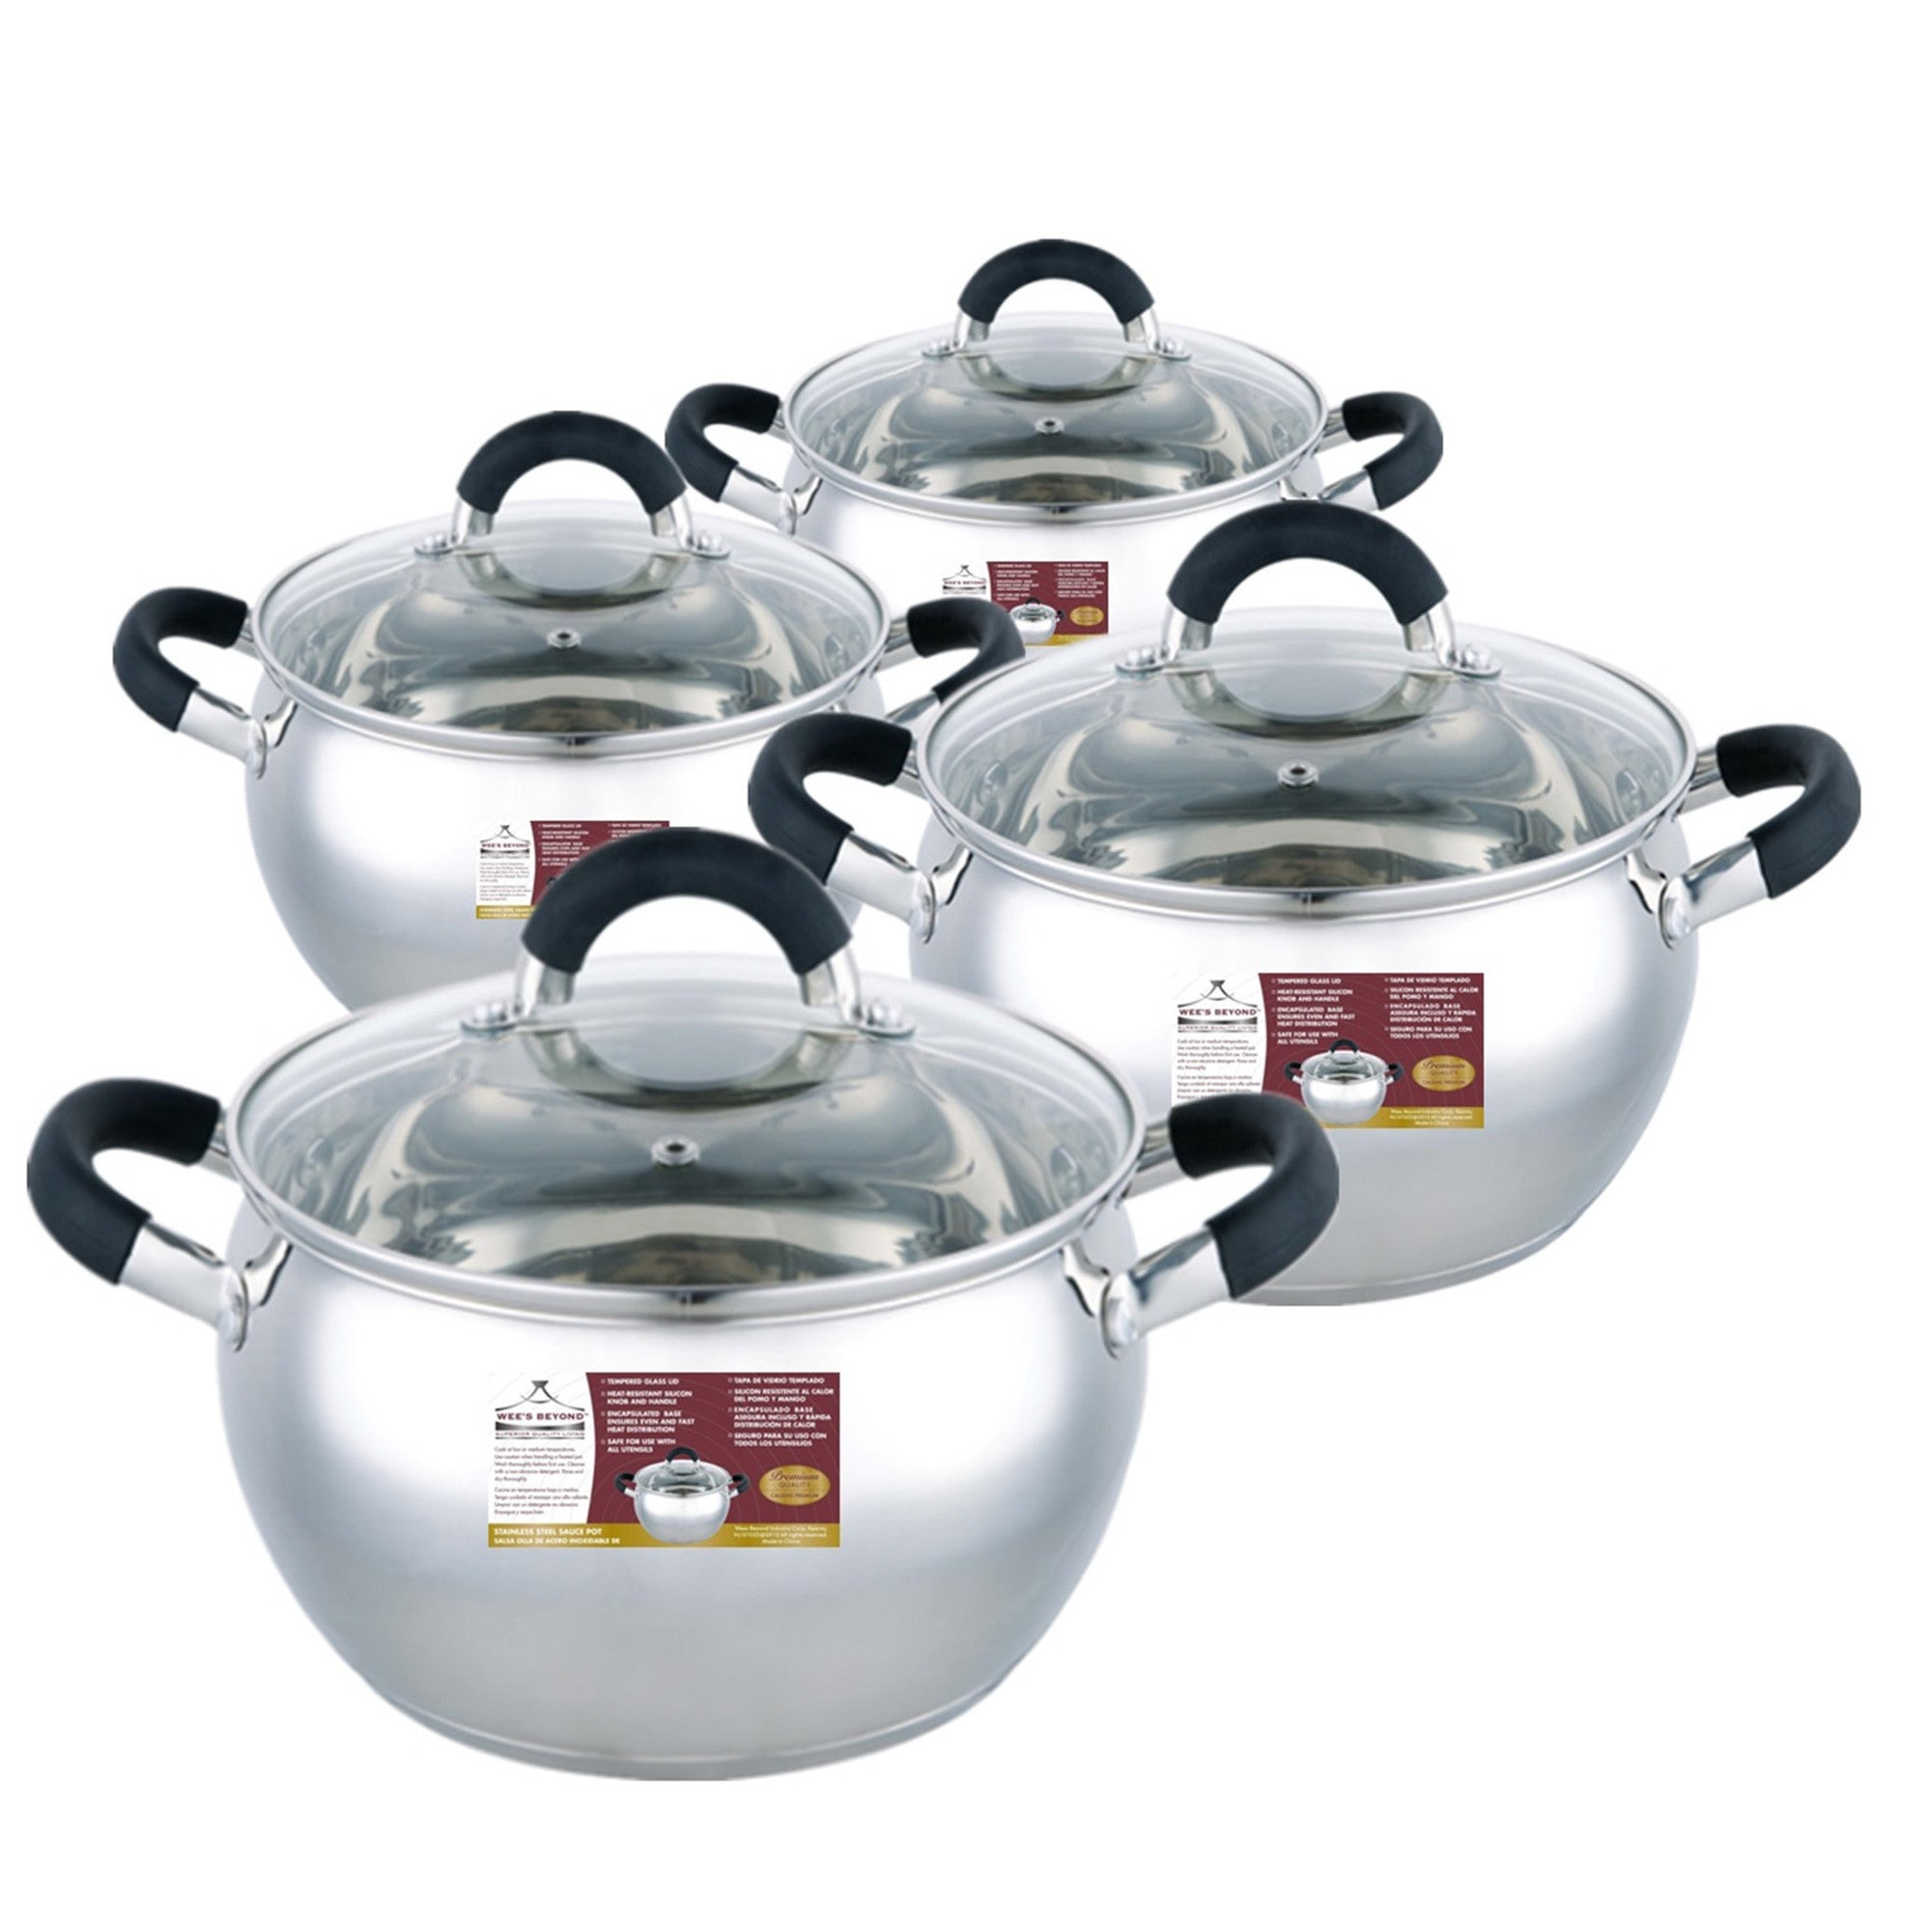 Wee' s Beyond Stainless Steel Apple-shape Sauce Pot Set (...